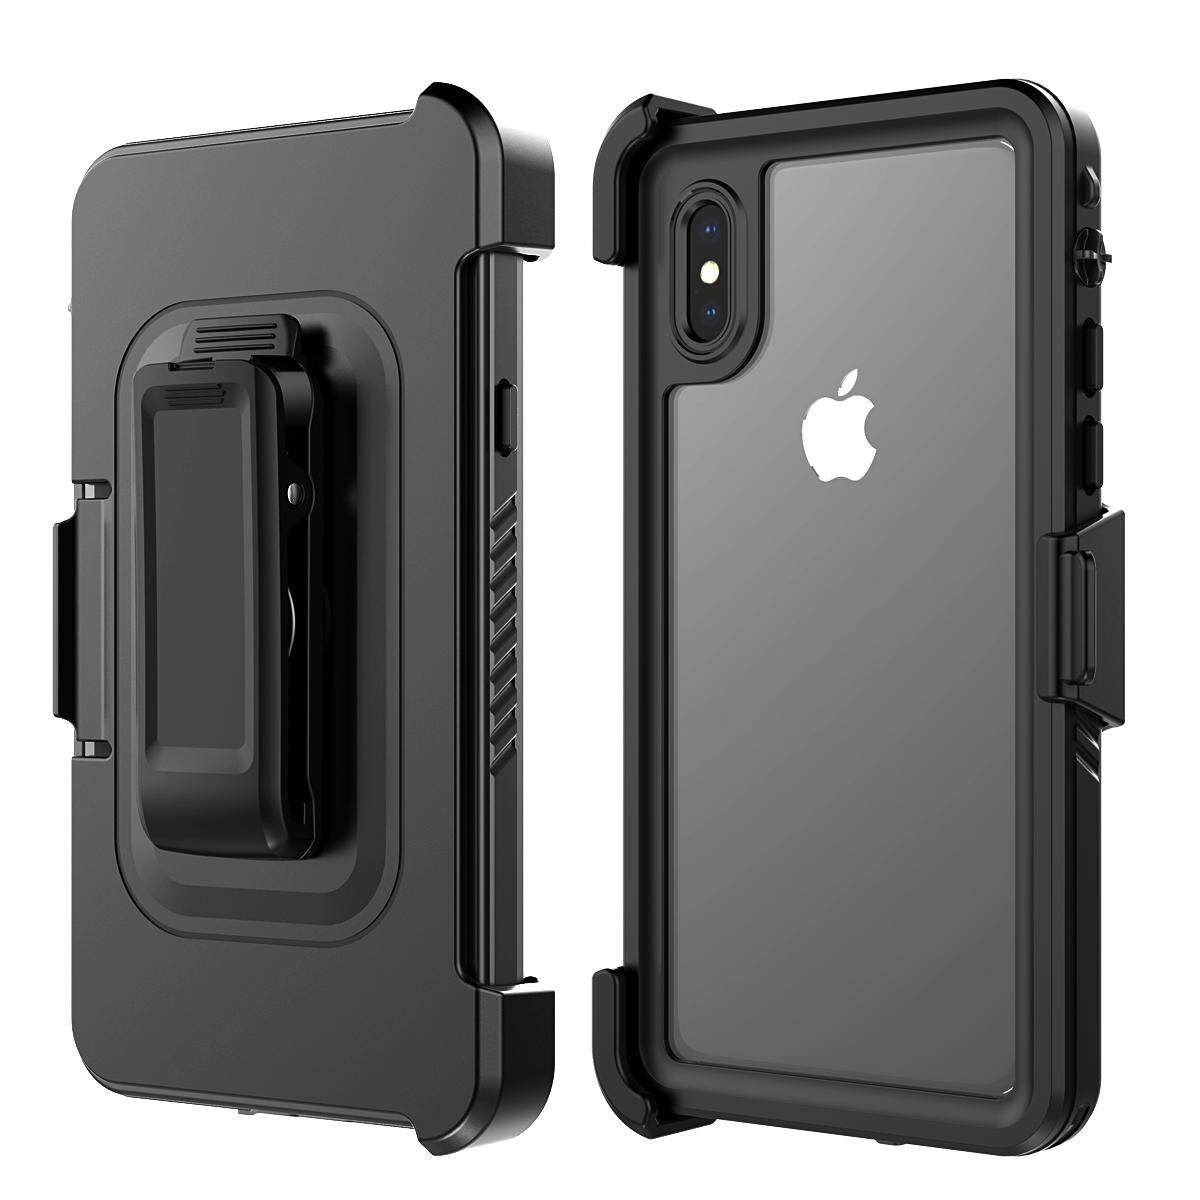 Case for iPhone X Case 360 Degree Protection Waterproof Dustproof Shockproof Back Case Kickstand and Swivel